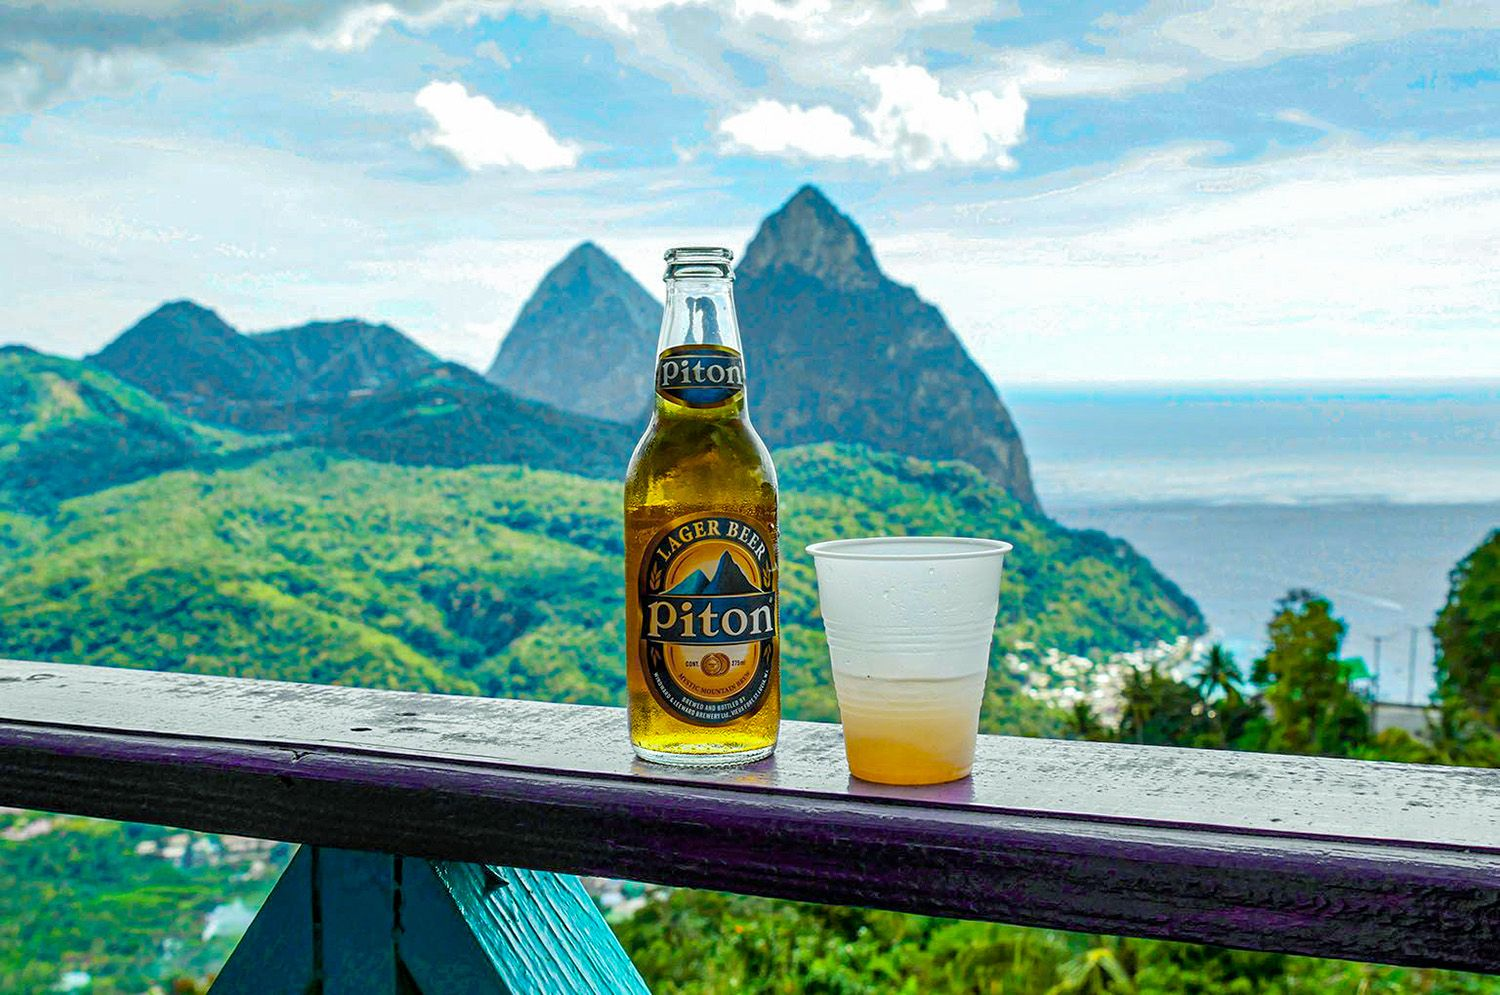 Piton-beer-1